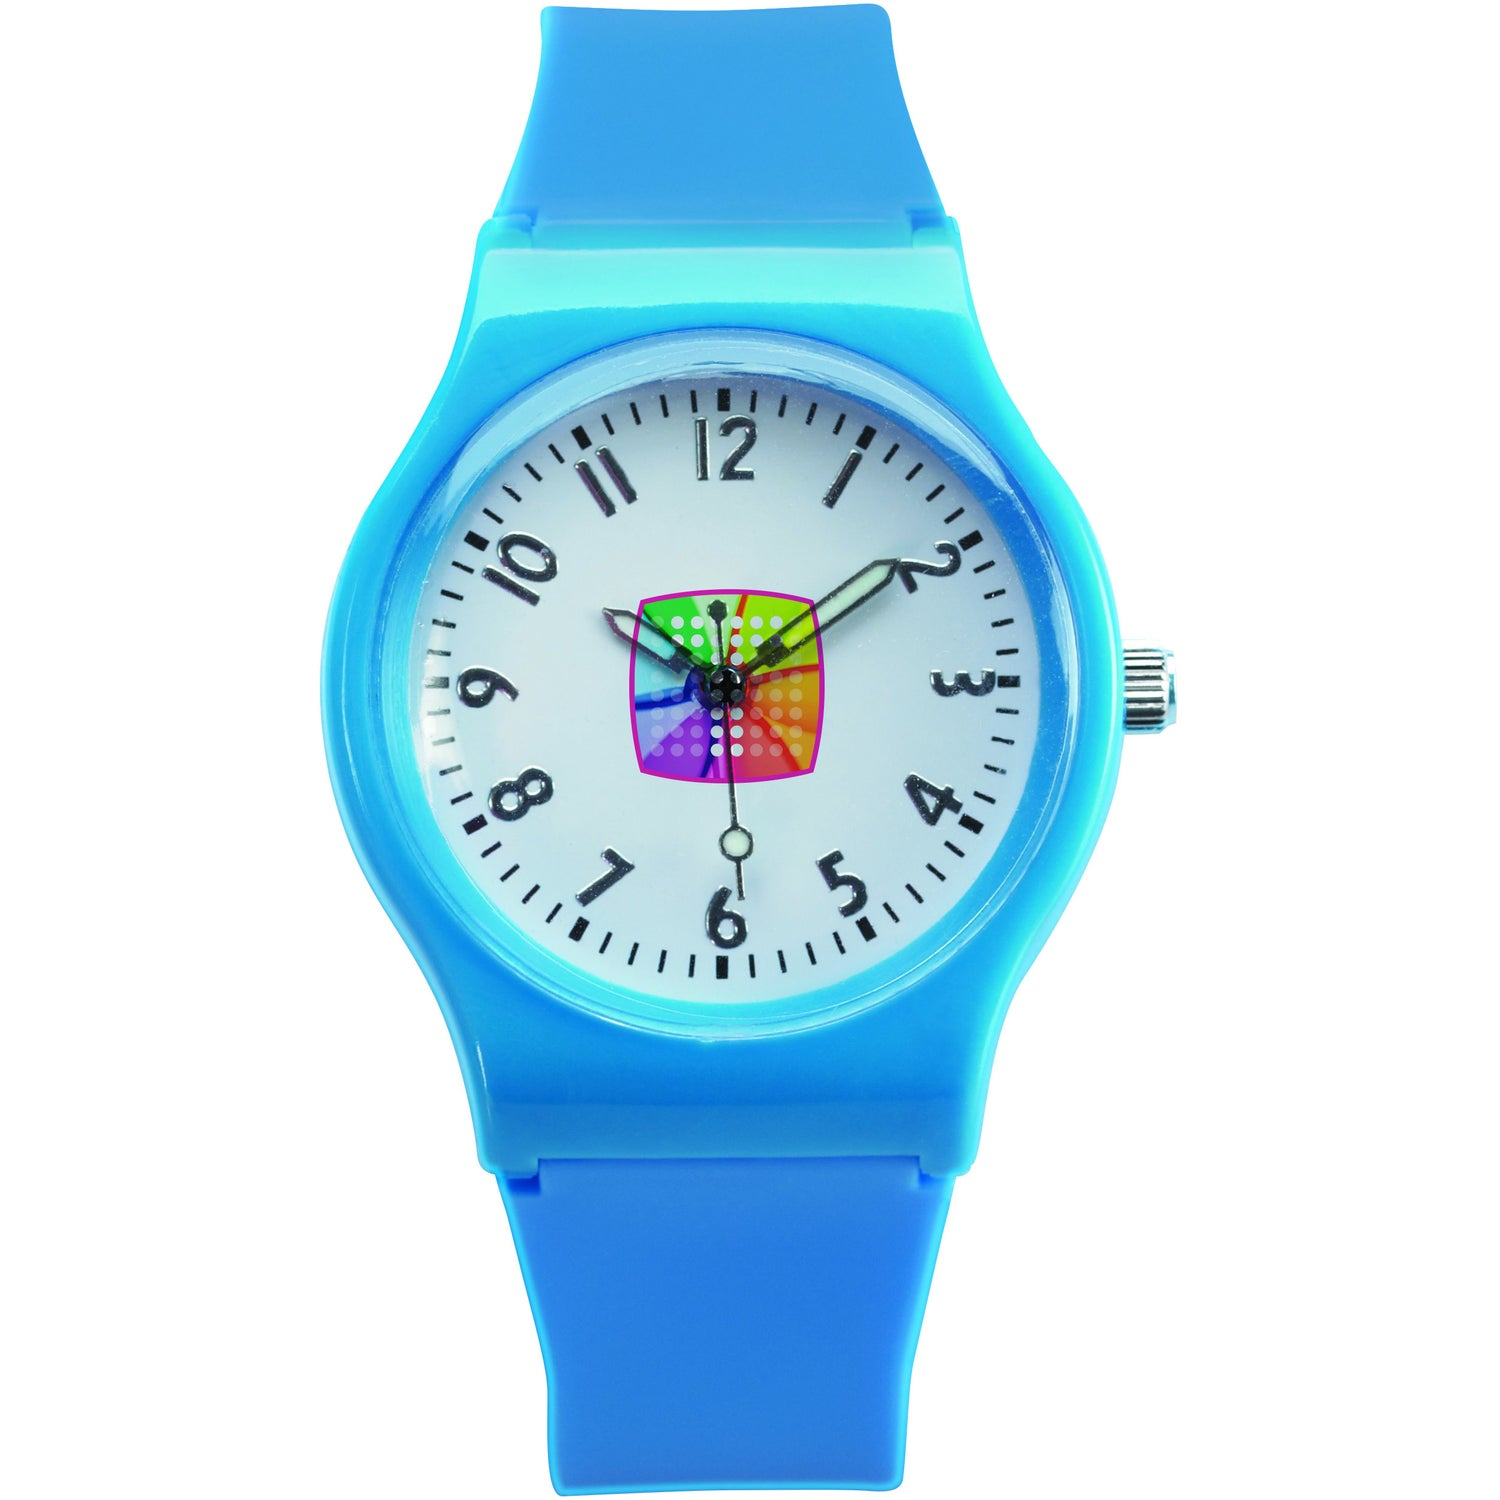 Right on time watch trade show giveaways ea for Right time images